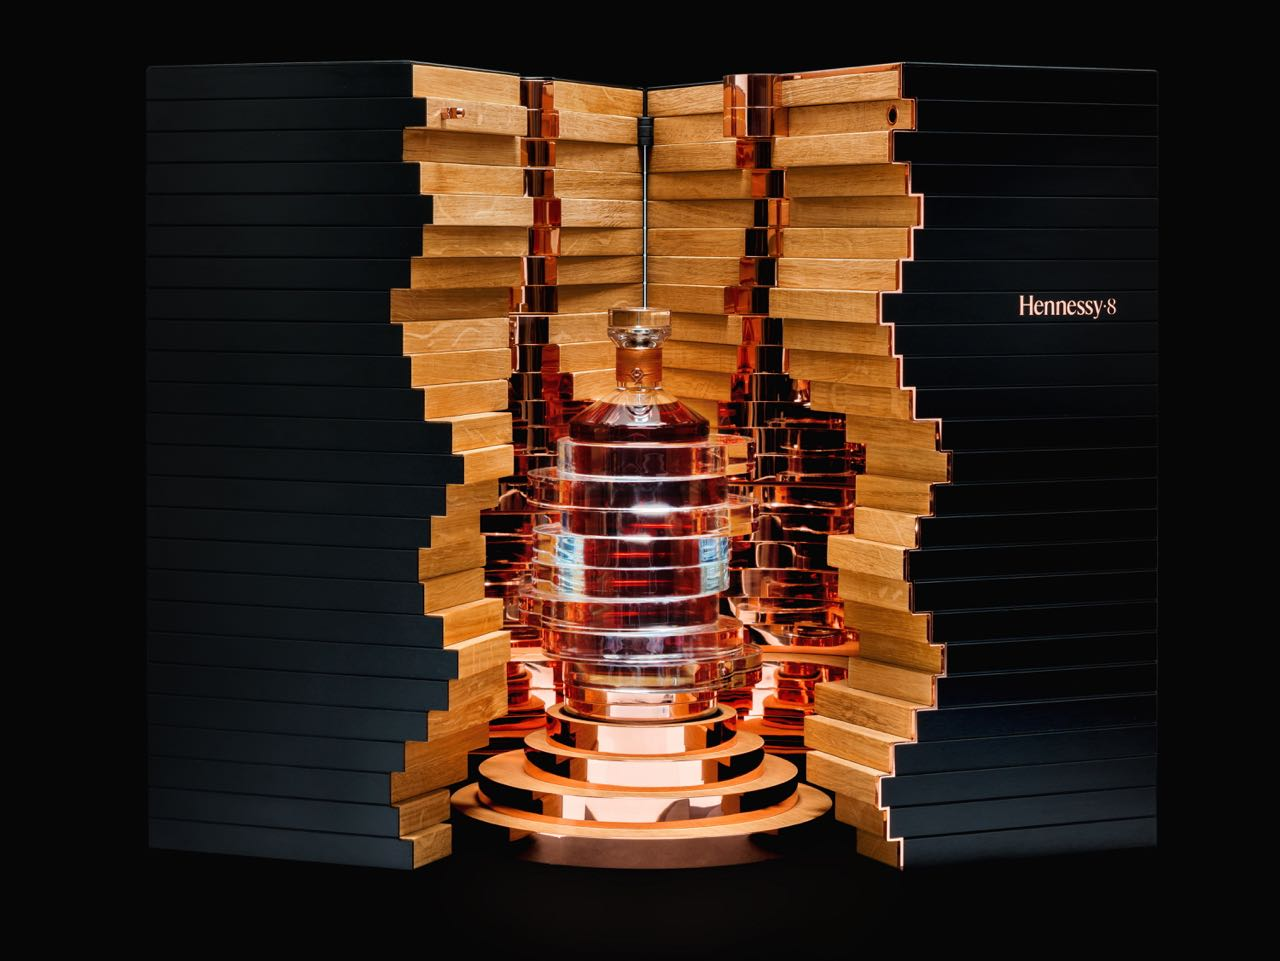 hennessy 8 cognac marks the change of cellar master generation